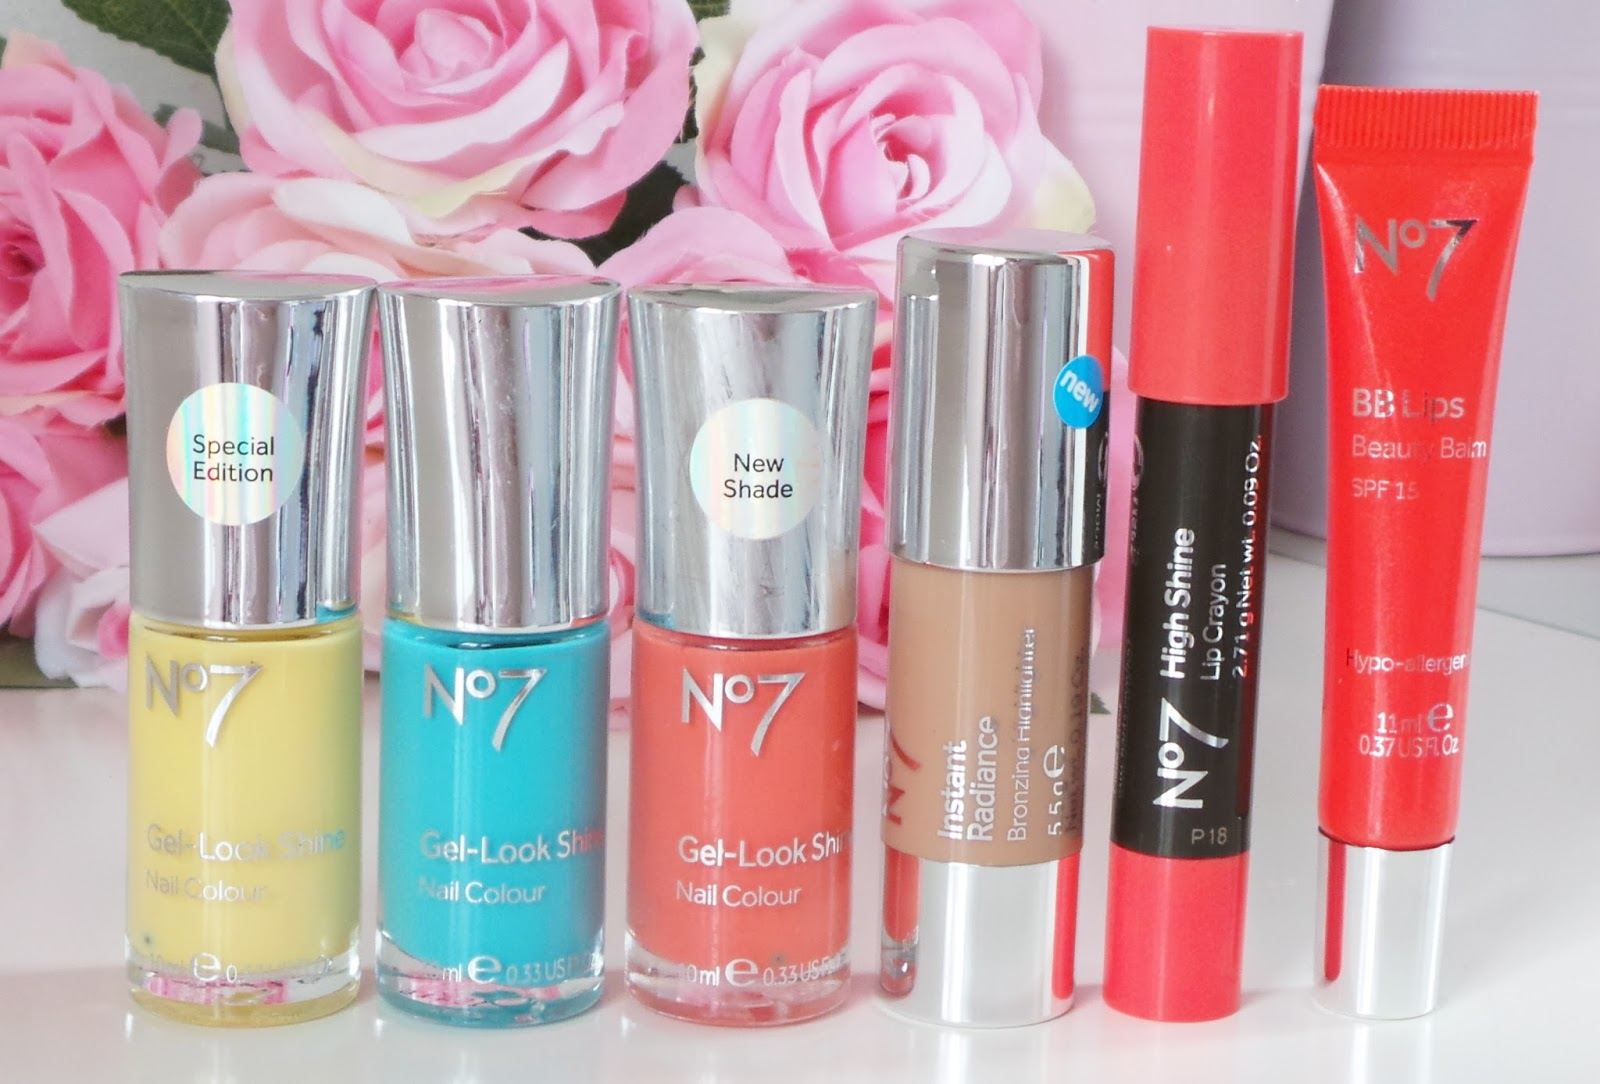 no7 summer collection, no7 at boots, no7 cosmetics, no7 review, no7 make up, no7 summer, no7 nail polish, beauty blog, beauty blogger, bblogger, ukbeautyblog, ukbeautyblogger,